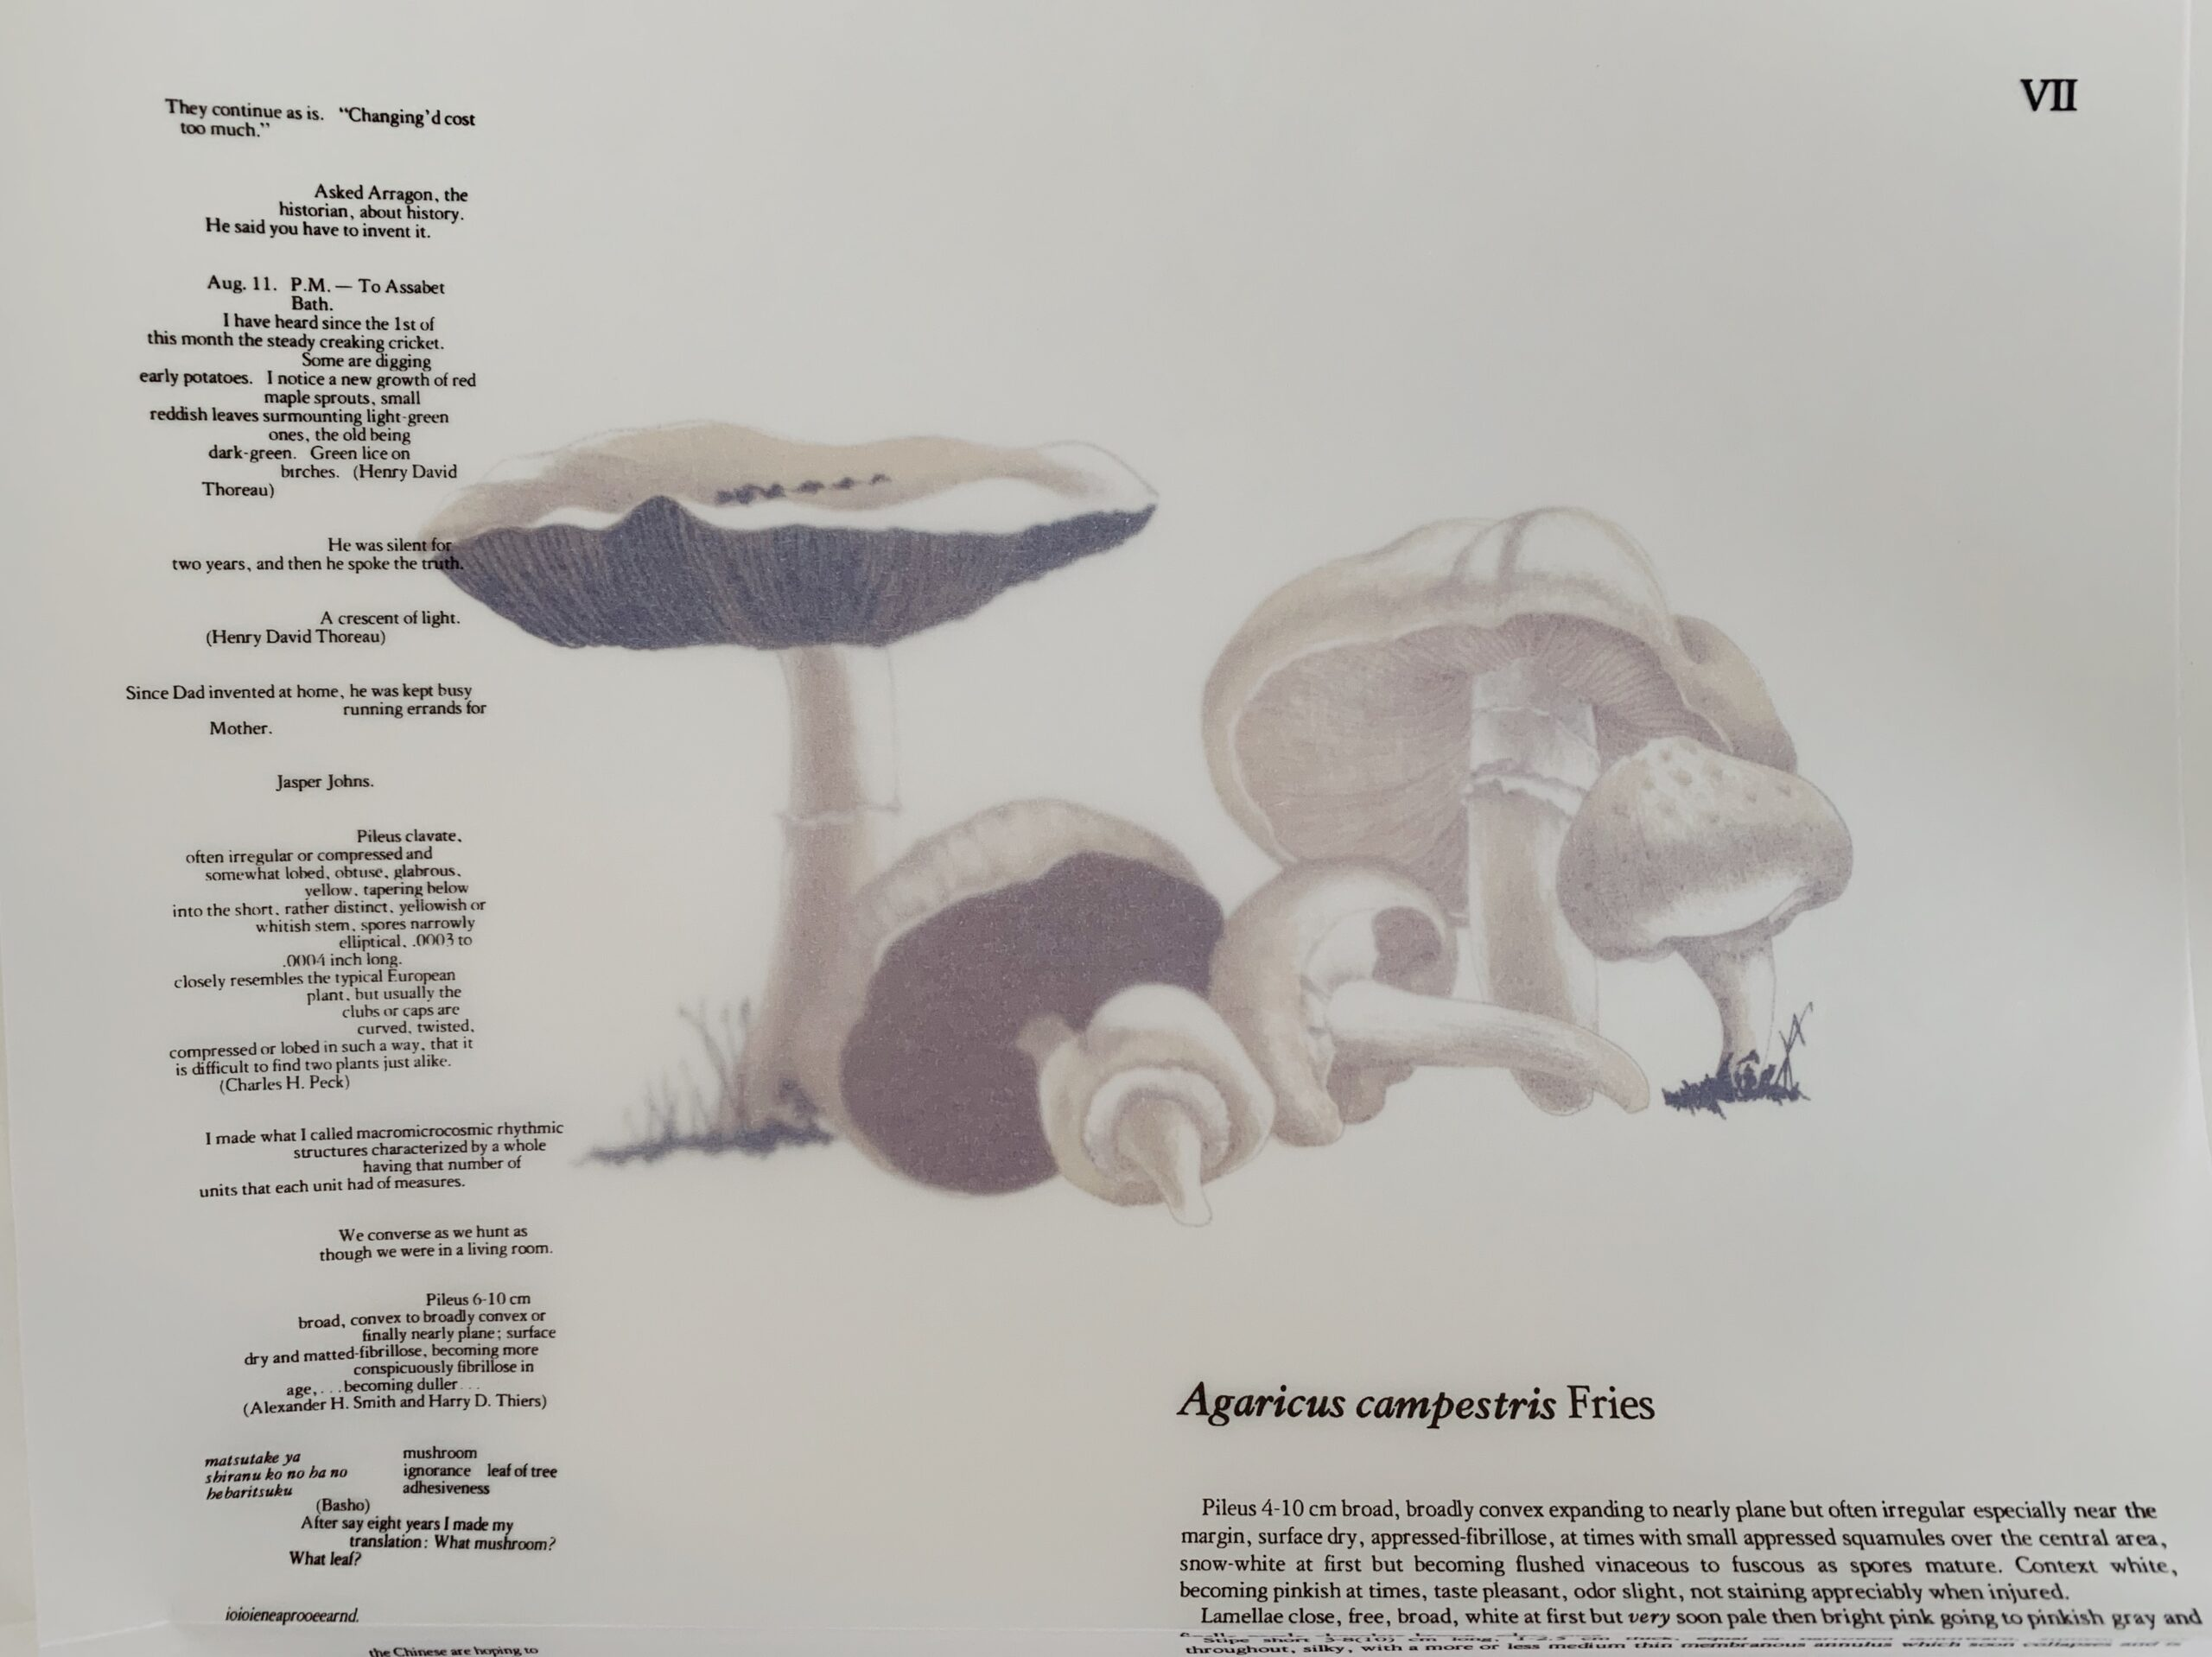 Agaricus campestris, illustration by Lois Long